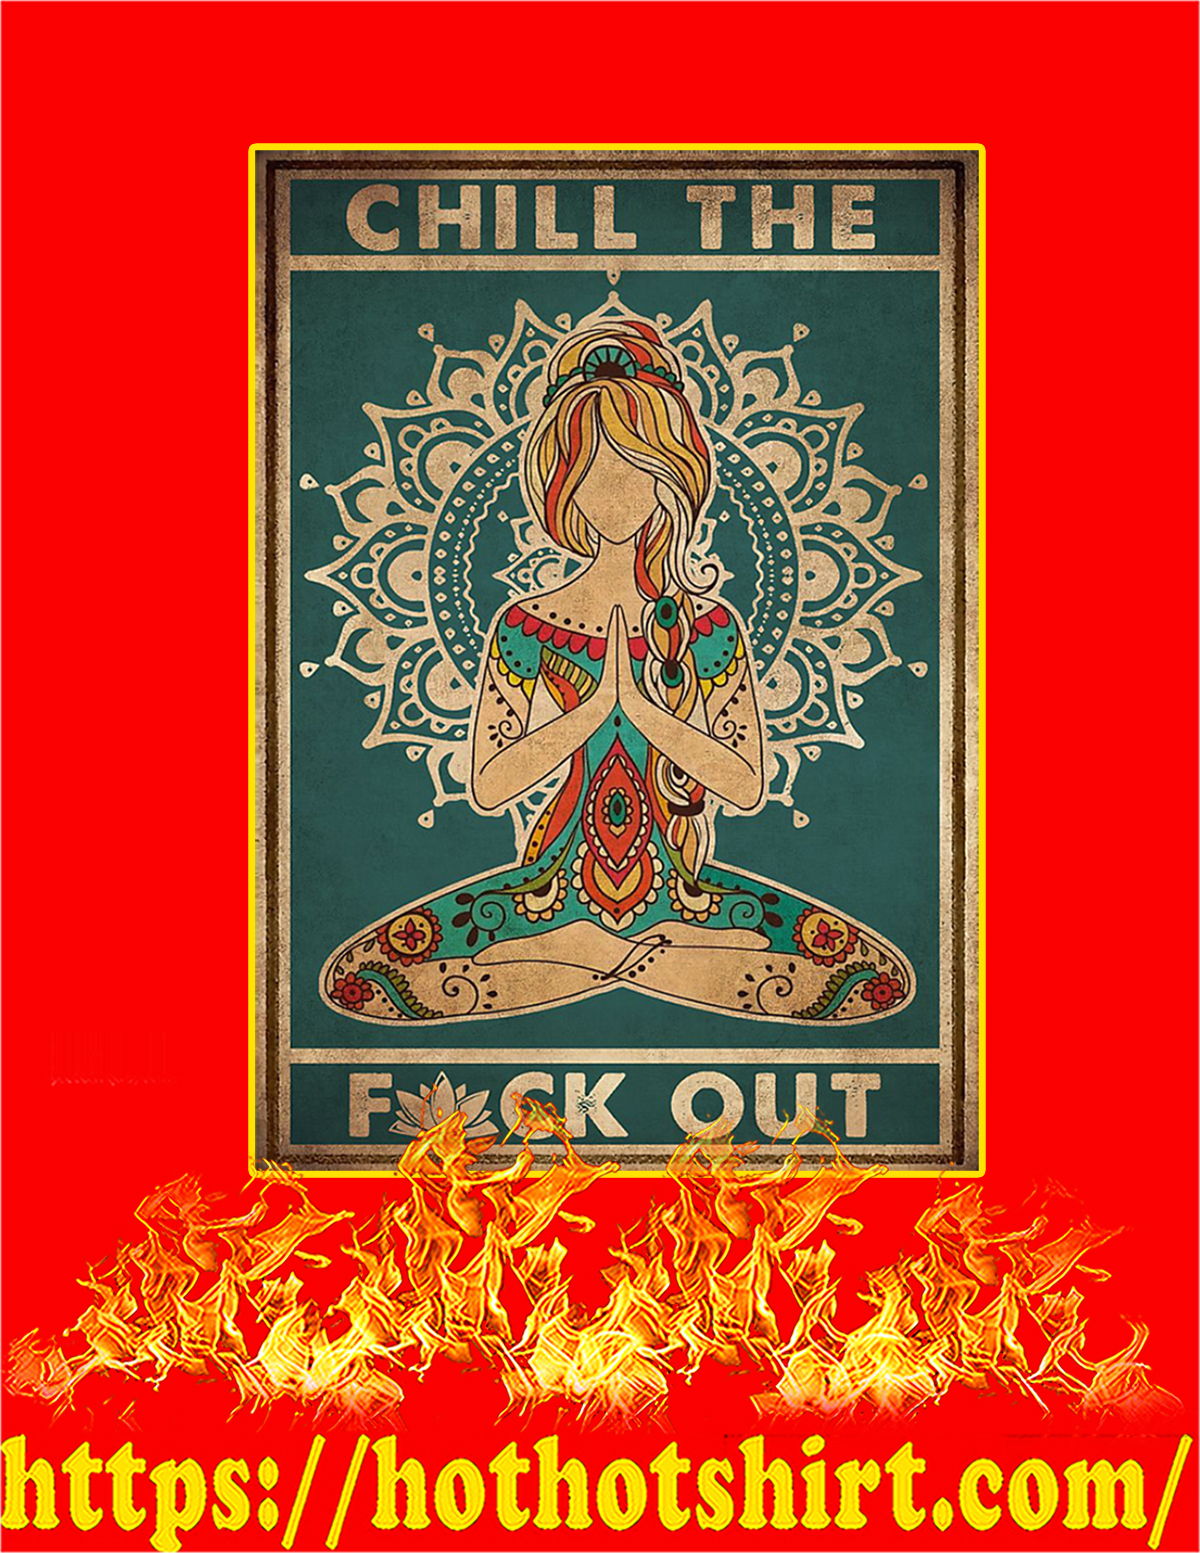 Yoga Chill the fuck out poster